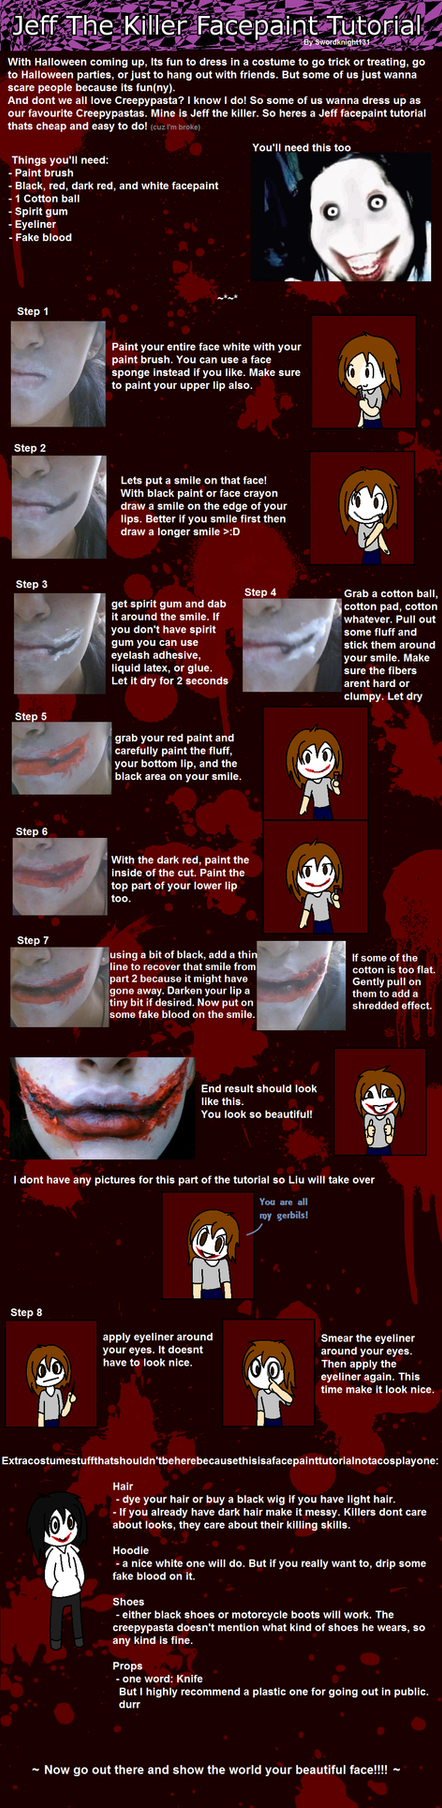 Epic Jeff the killer facepaint tutorial by SwordKnight131